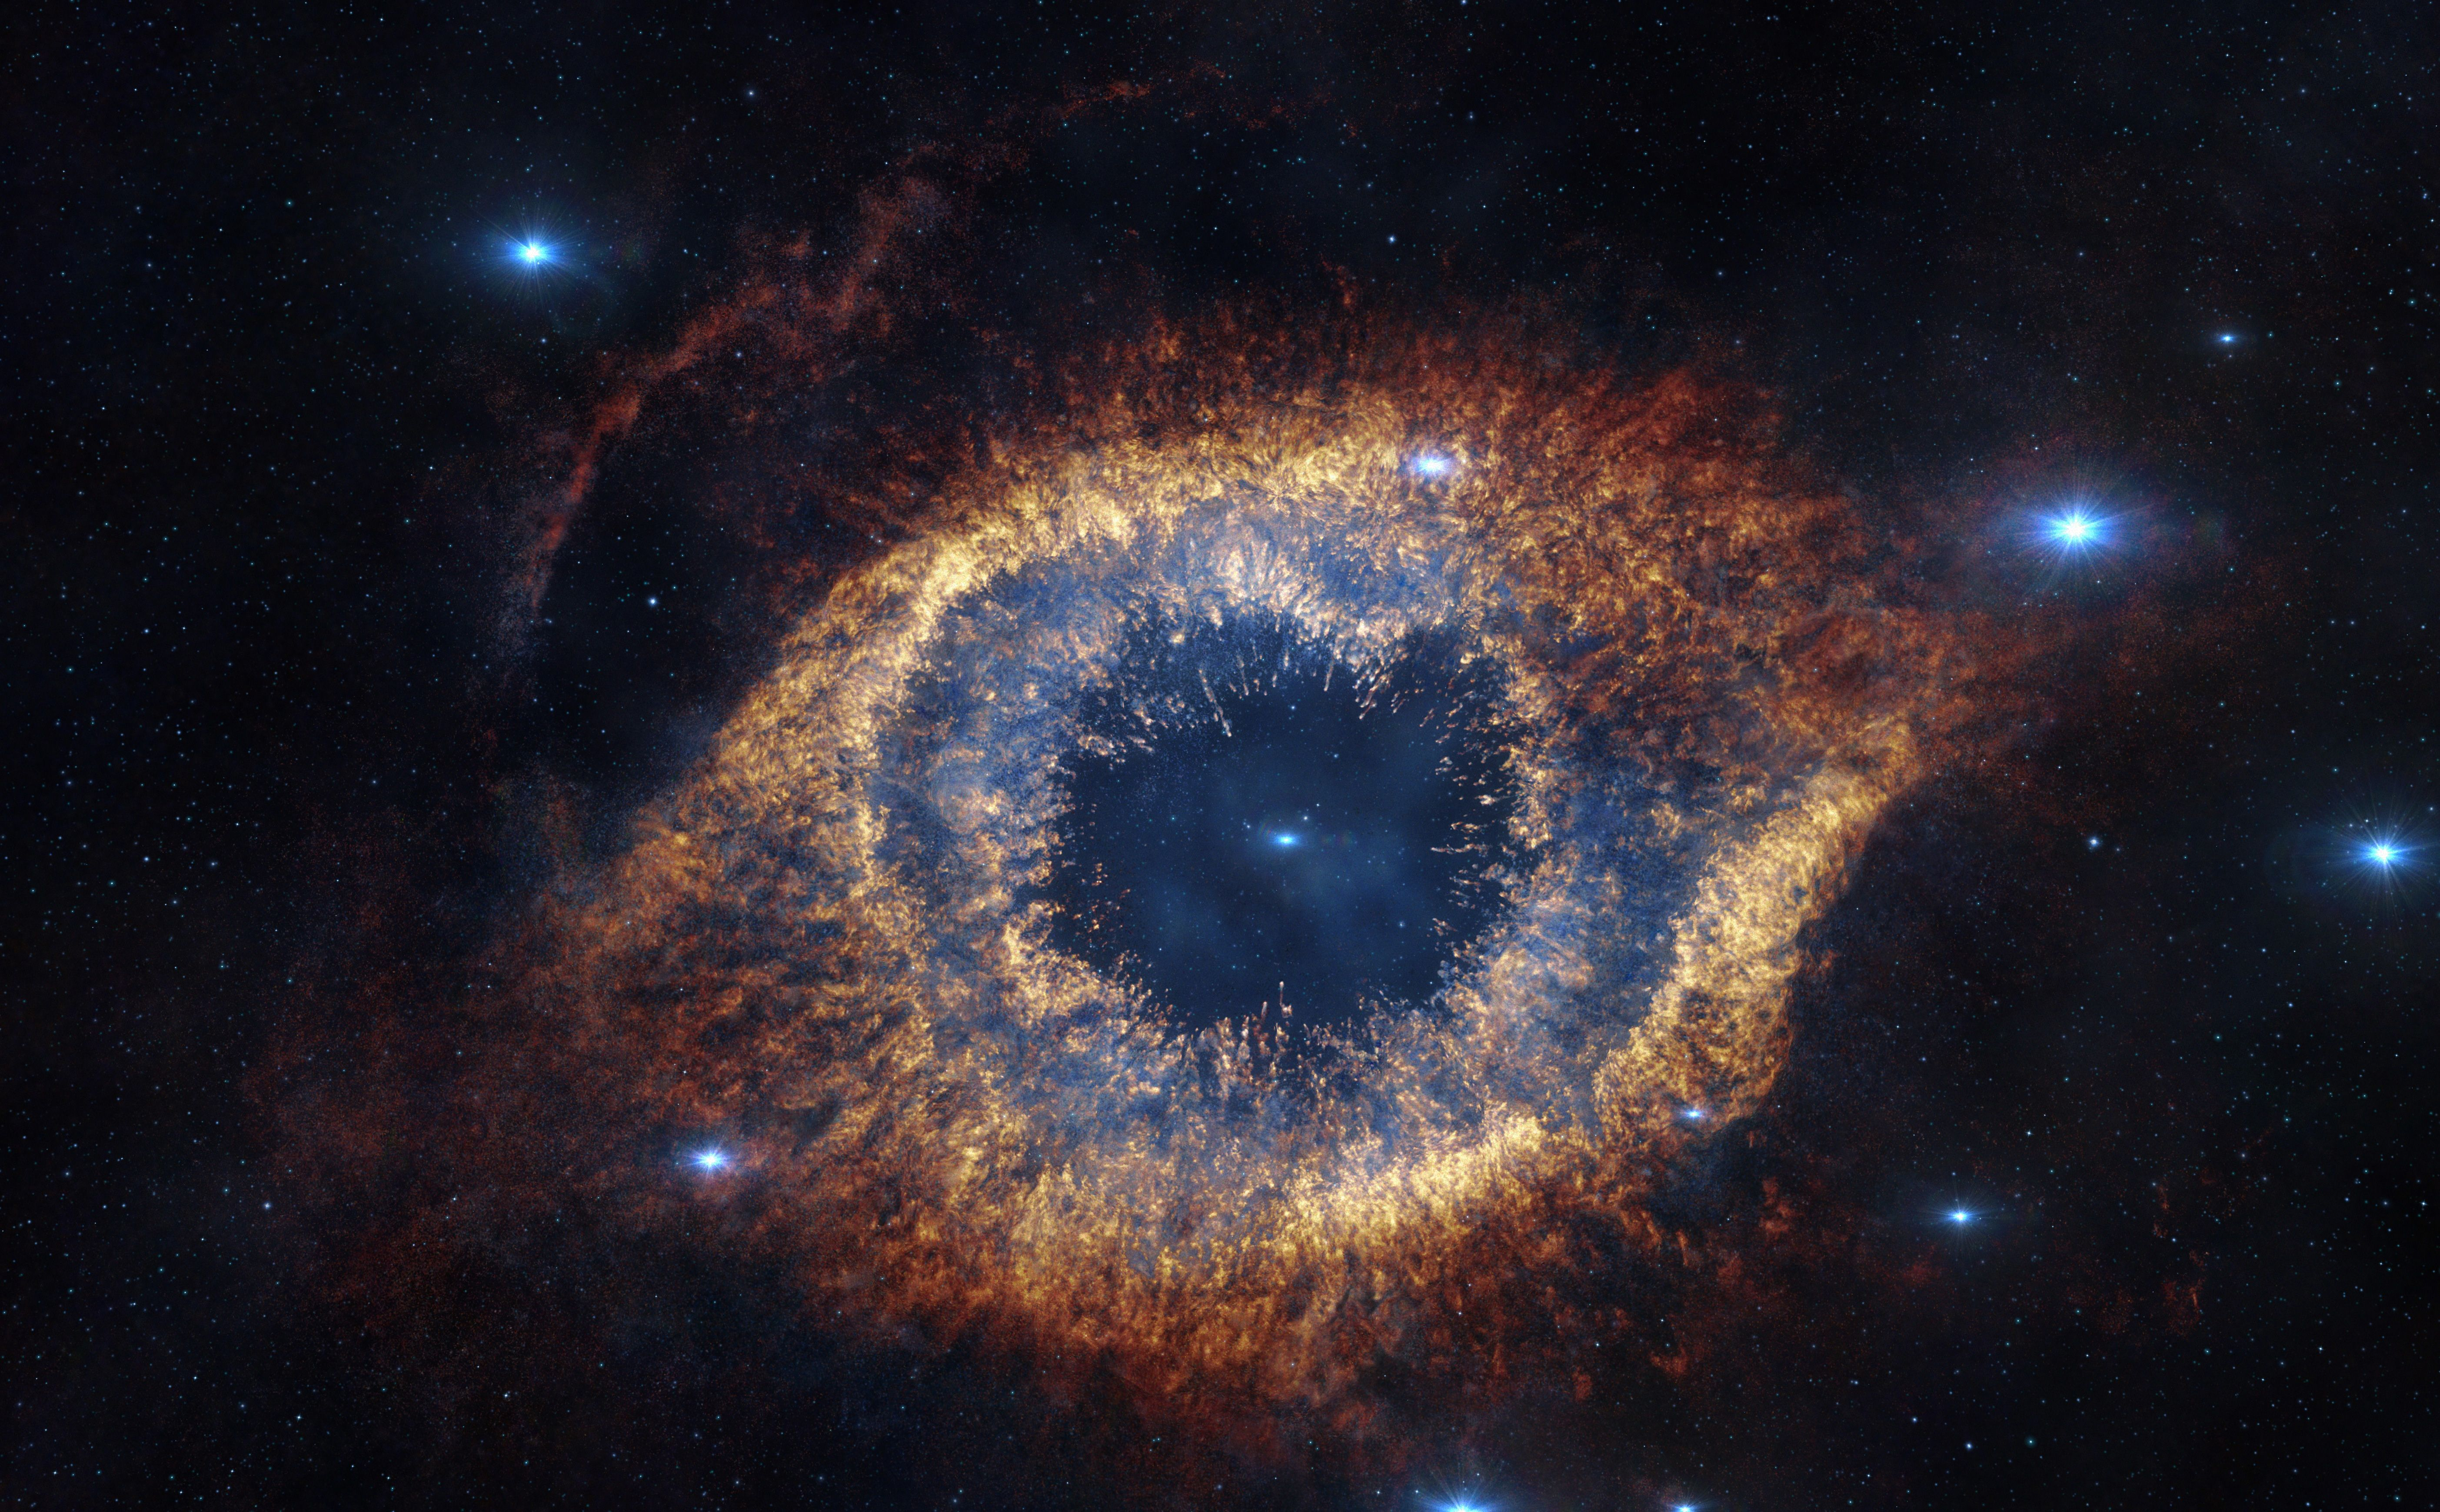 The Helix Nebula is 700 light-years away from Earth, but screened before audience's eyes in reconstructed 3D in Hidden…